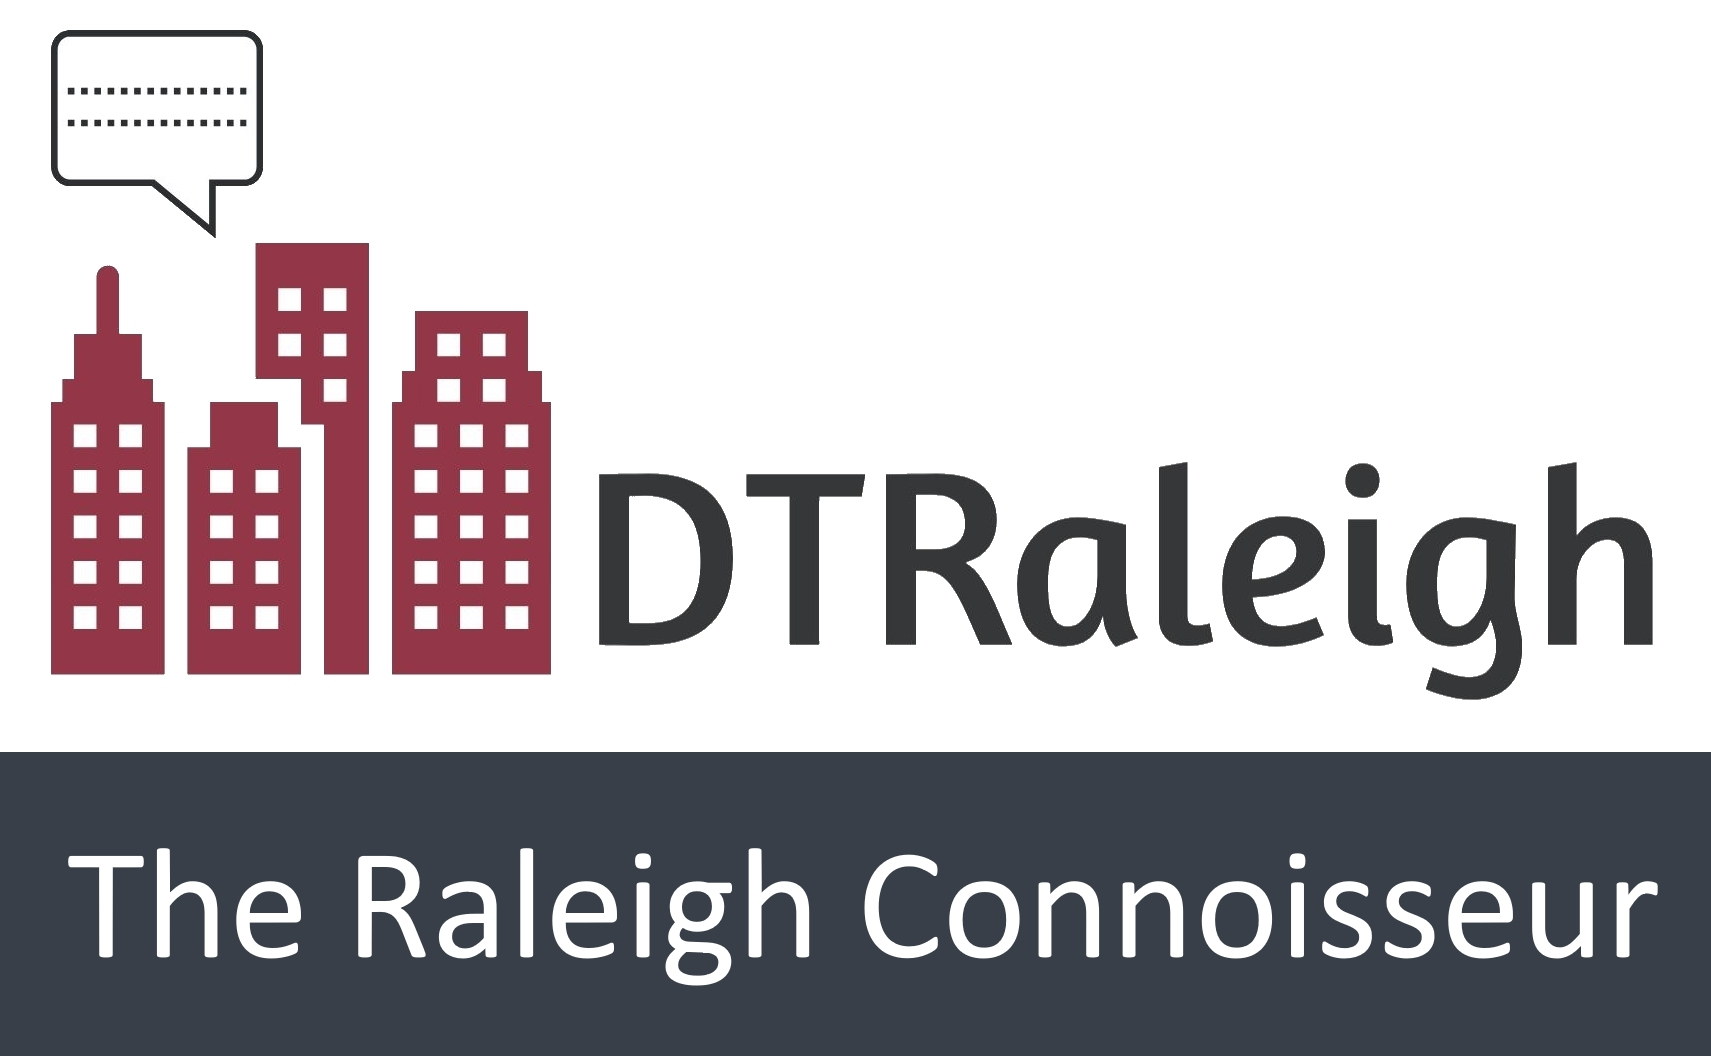 The Raleigh Connoisseur